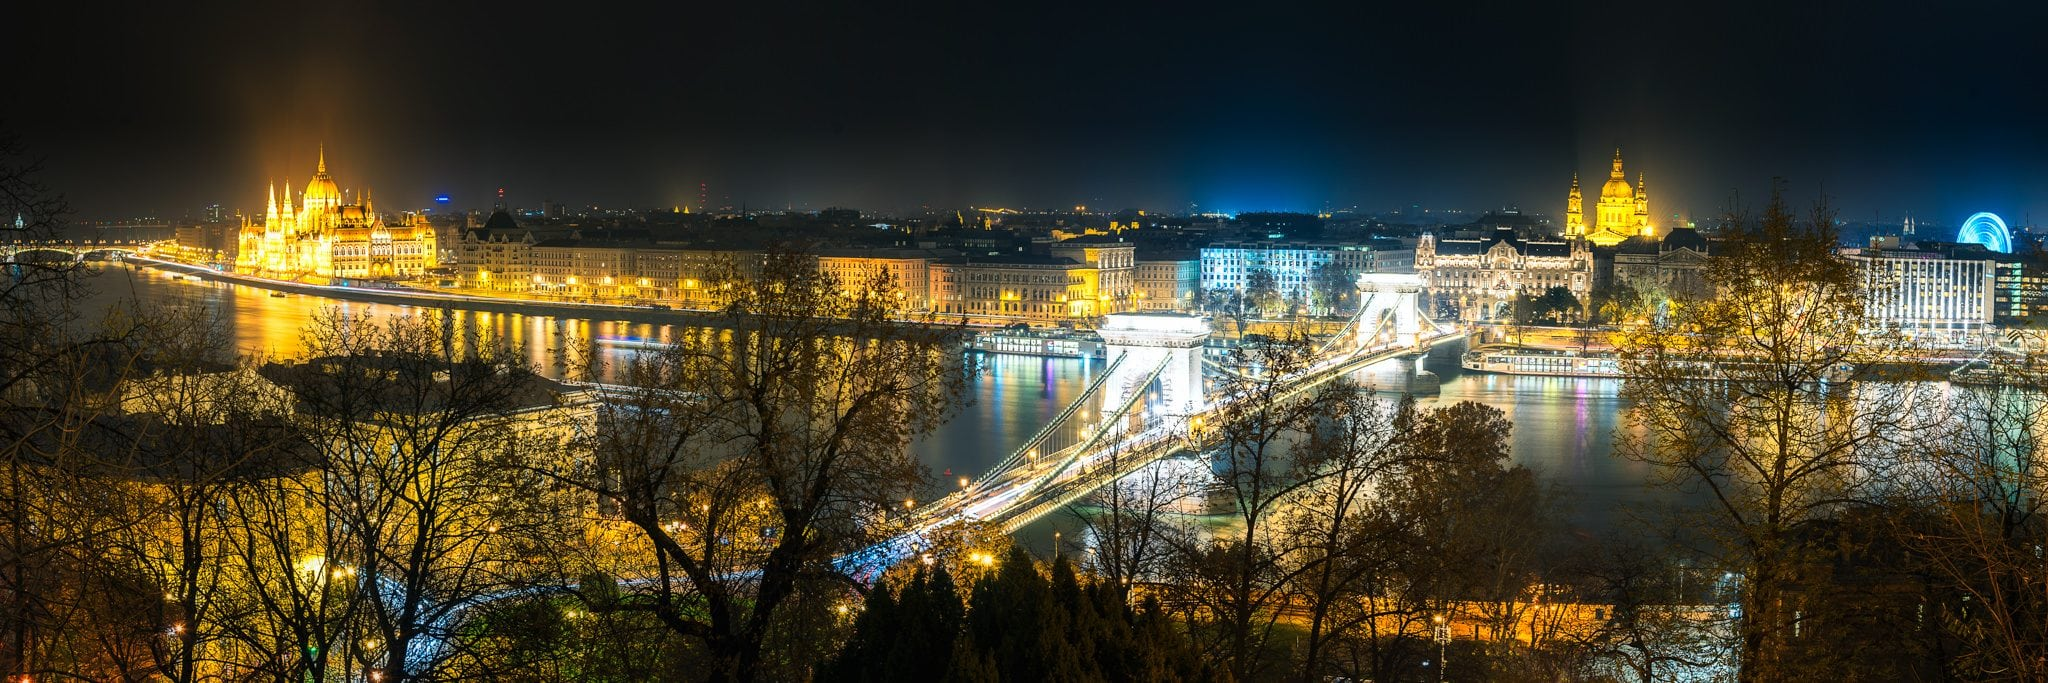 The Danube River in a Budapest panoramic view captured in a foggy autumn night.